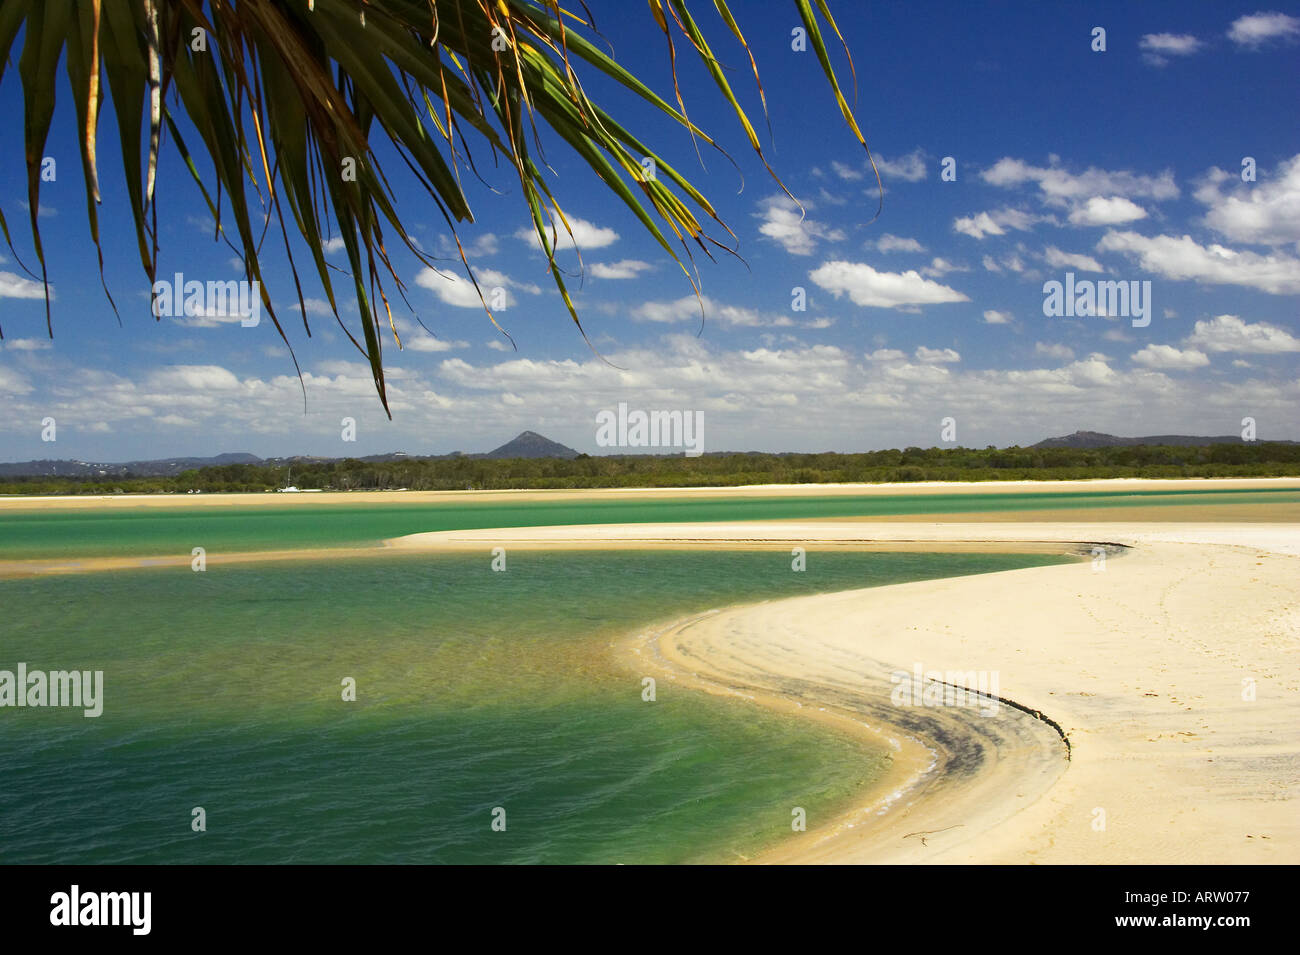 Noosa Inlet Noosa Heads Sunshine Coast Queensland Australia - Stock Image